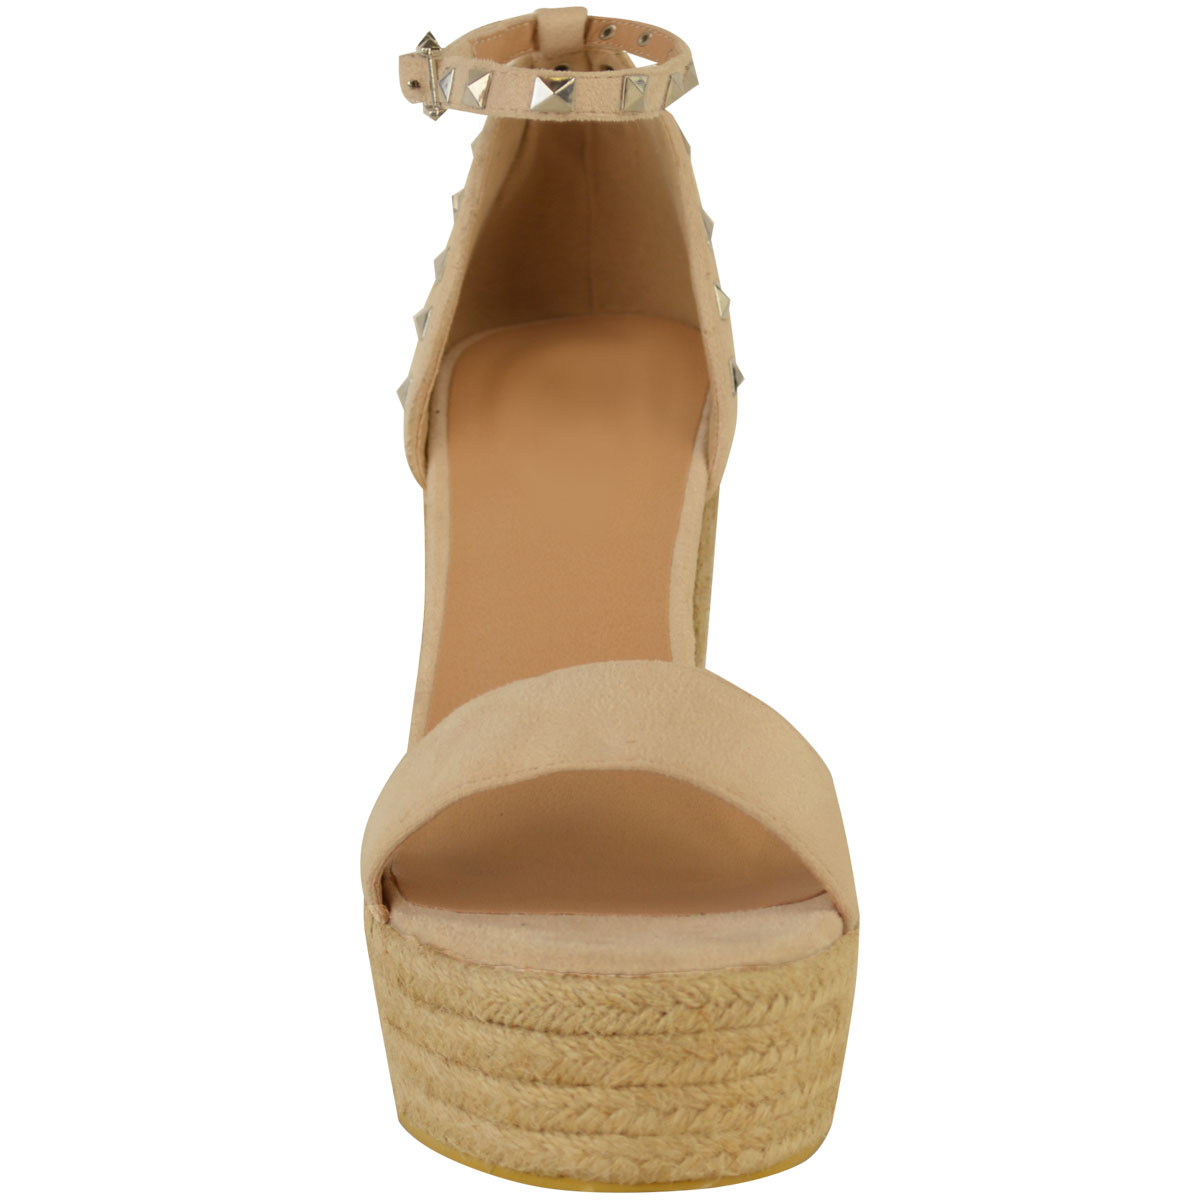 New-Womens-Stud-Espadrille-Wedge-Summer-Sandal-Ladies-Rose-Gold-Party-Shoes-Size thumbnail 13